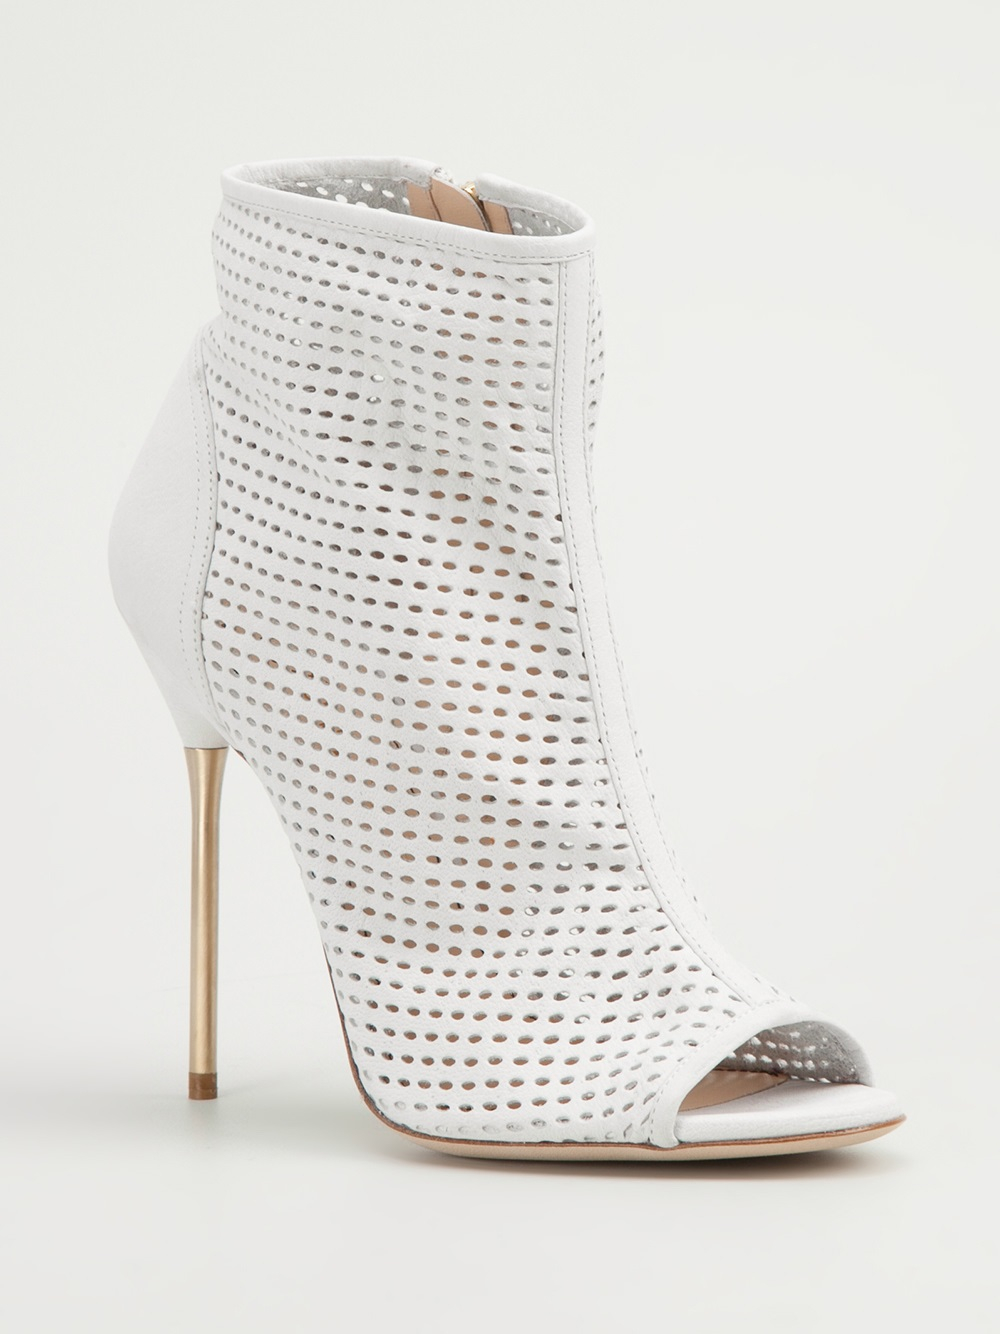 Jerome C. Rousseau Addict Boots in White